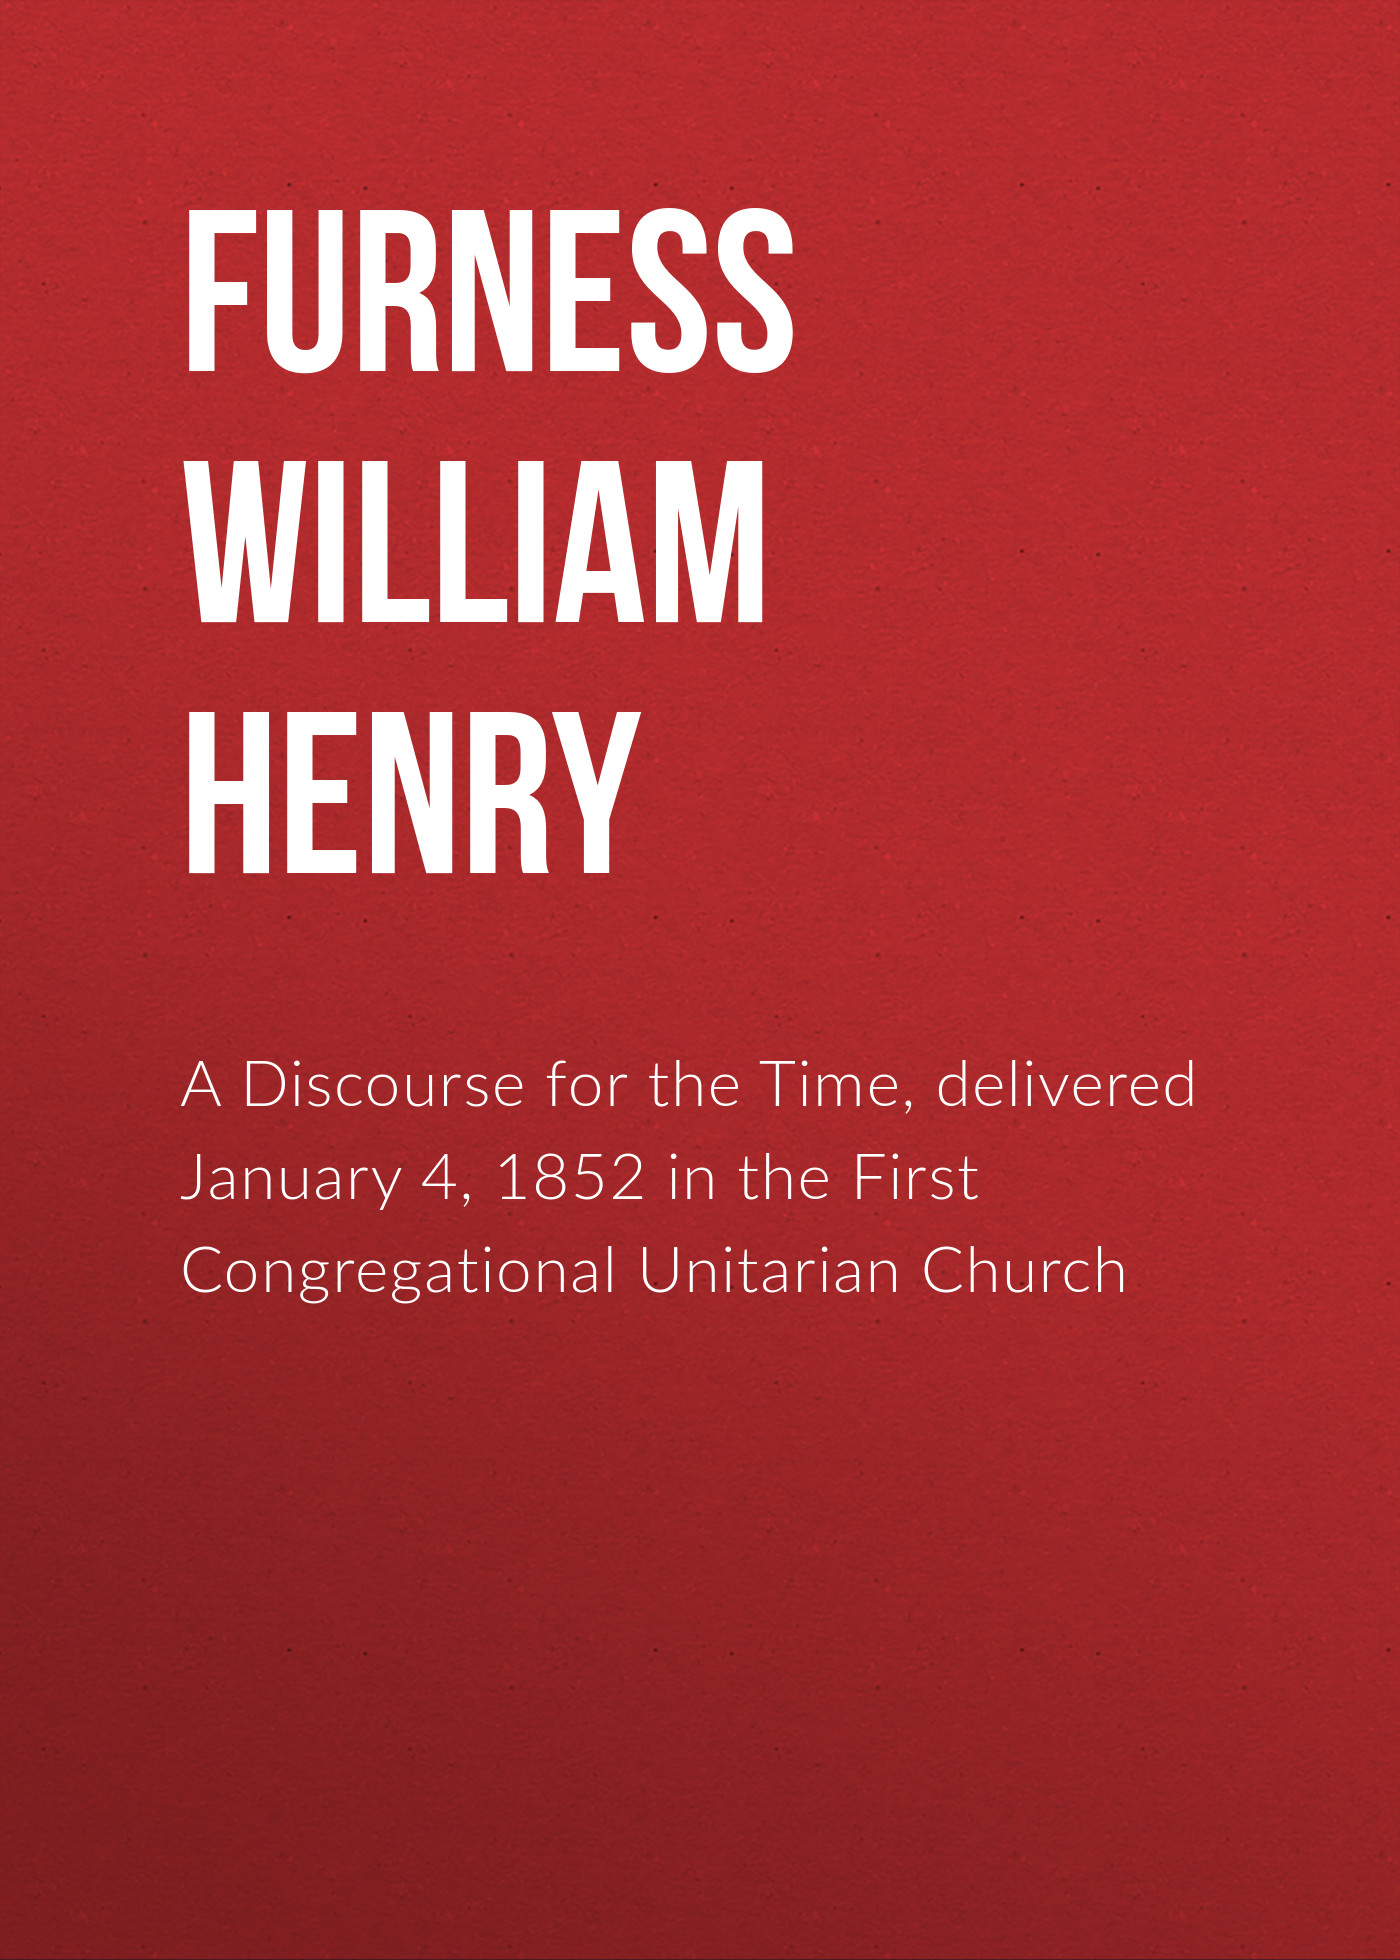 Furness William Henry A Discourse for the Time, delivered January 4, 1852 in the First Congregational Unitarian Church sbart upf50 rashguard 916